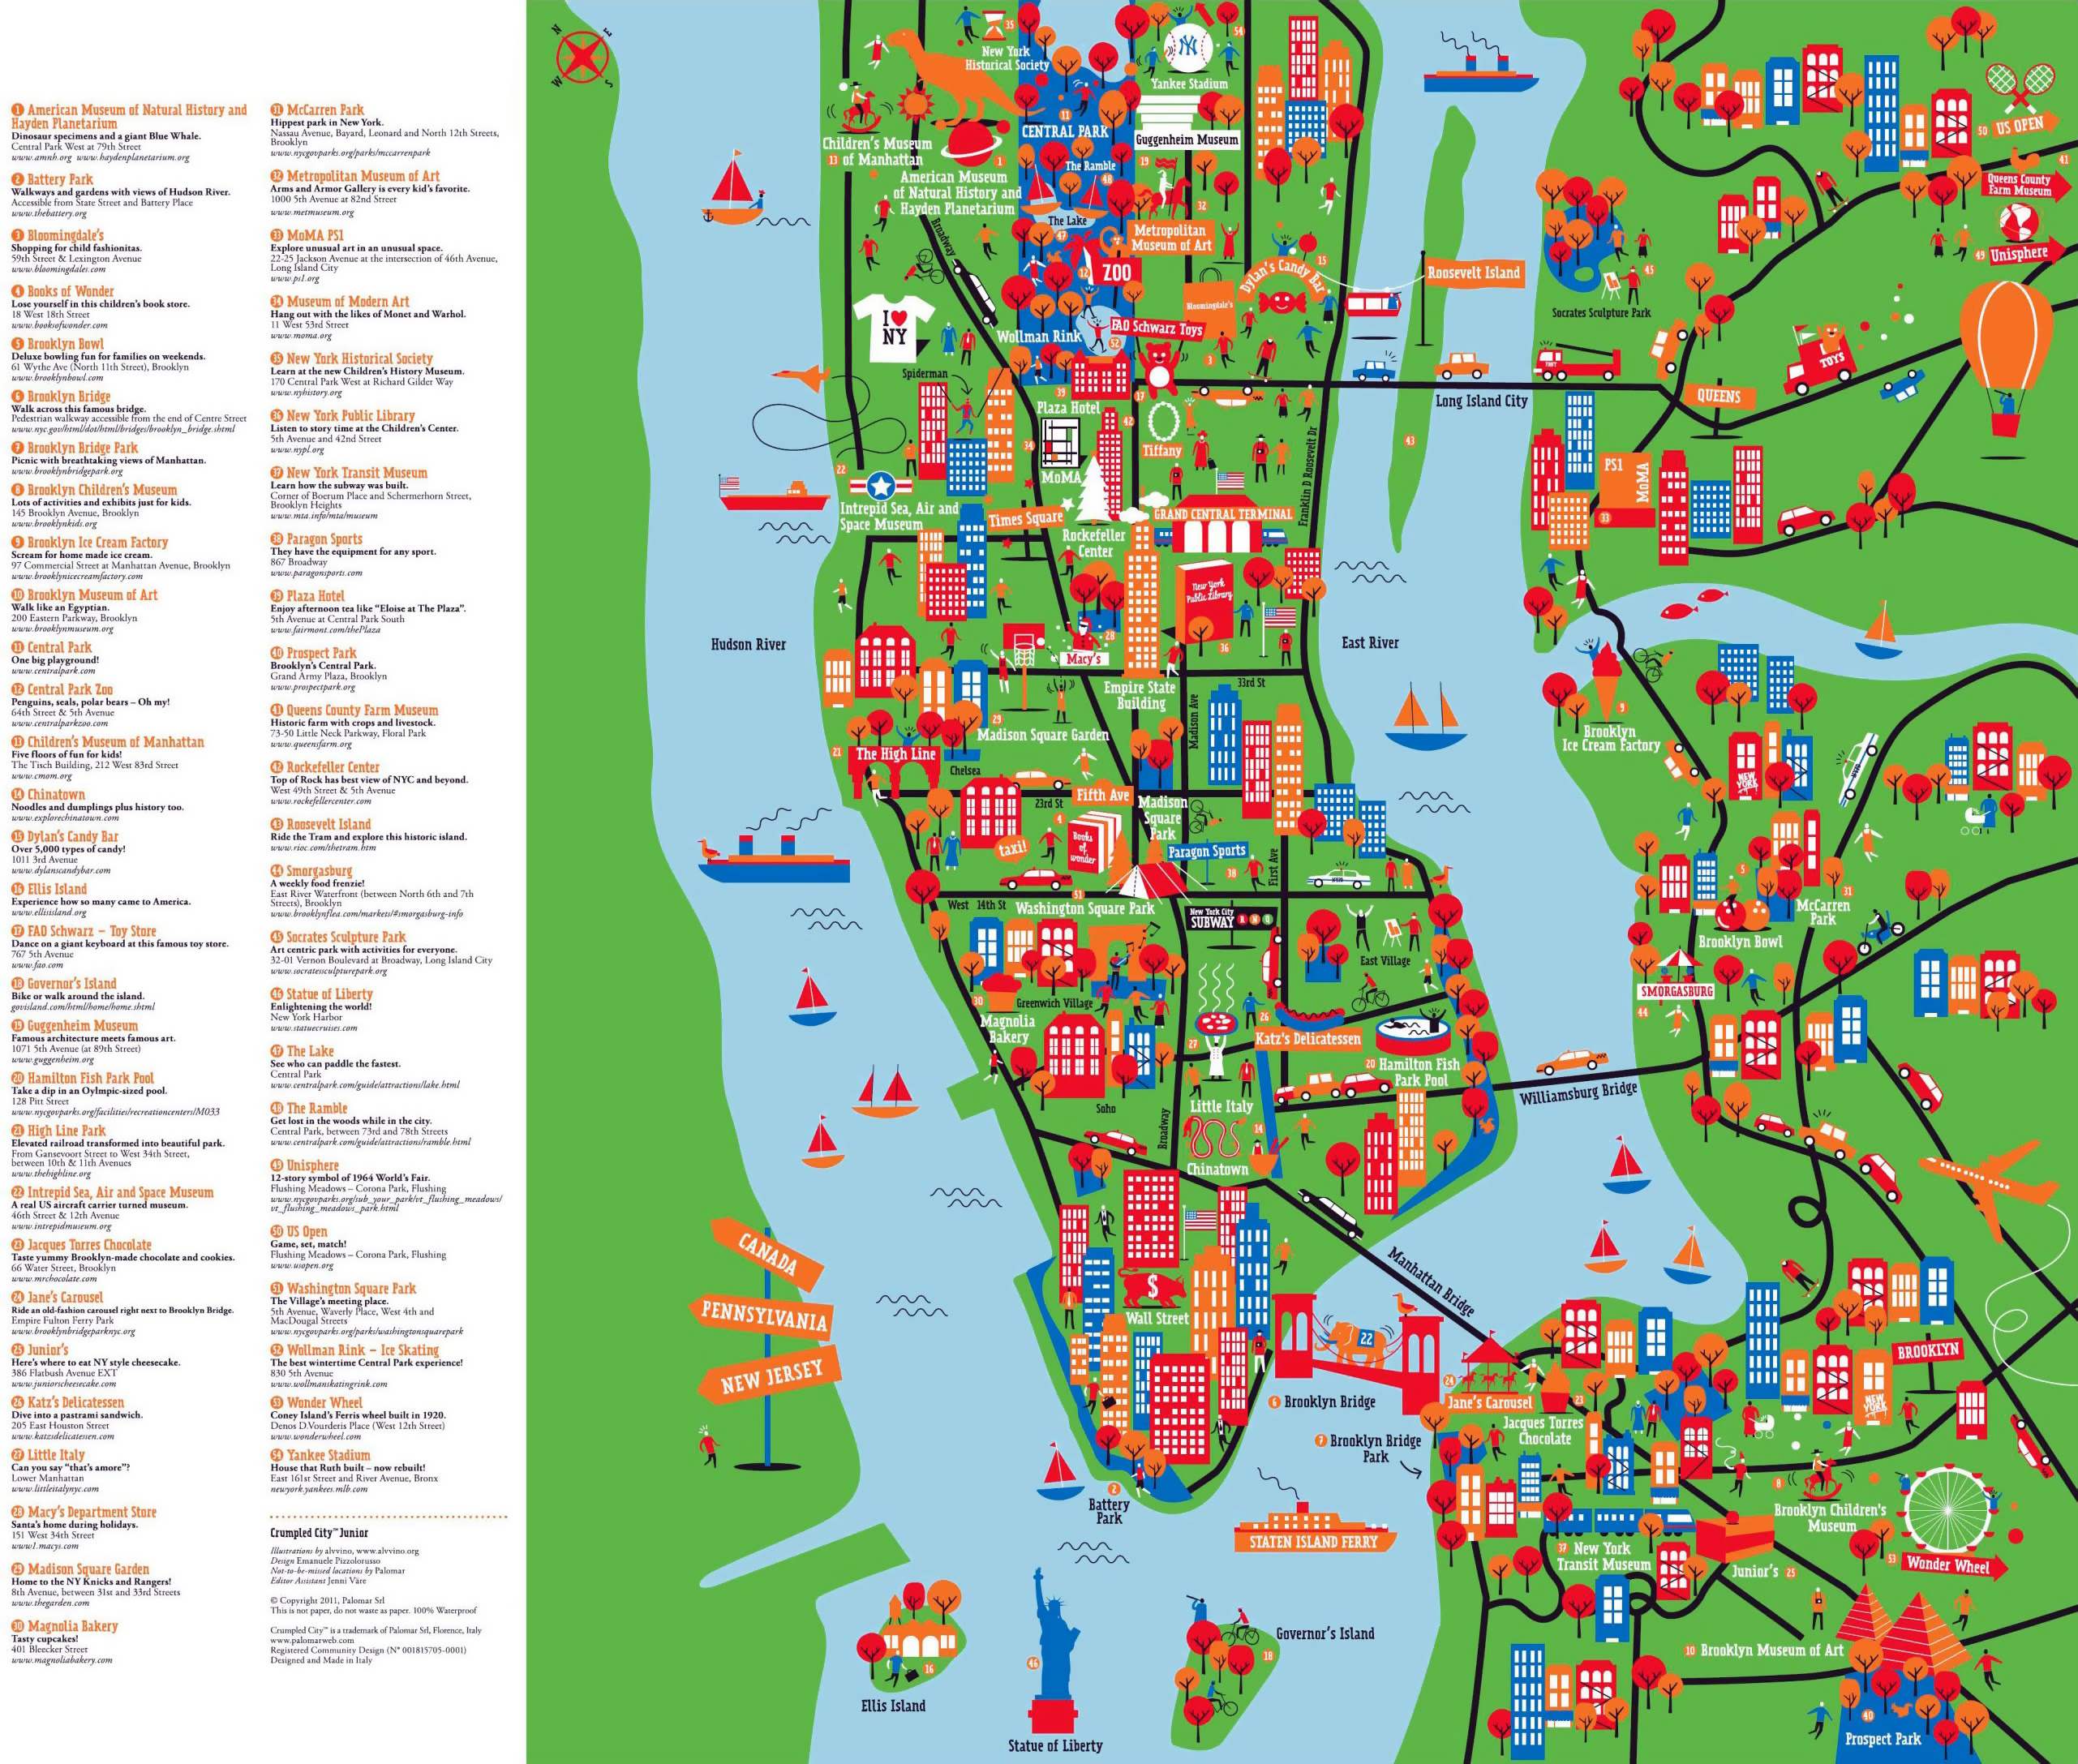 Nyc Attractions Map Map Of New York City Tourist Attractions | Map Of Us Western States